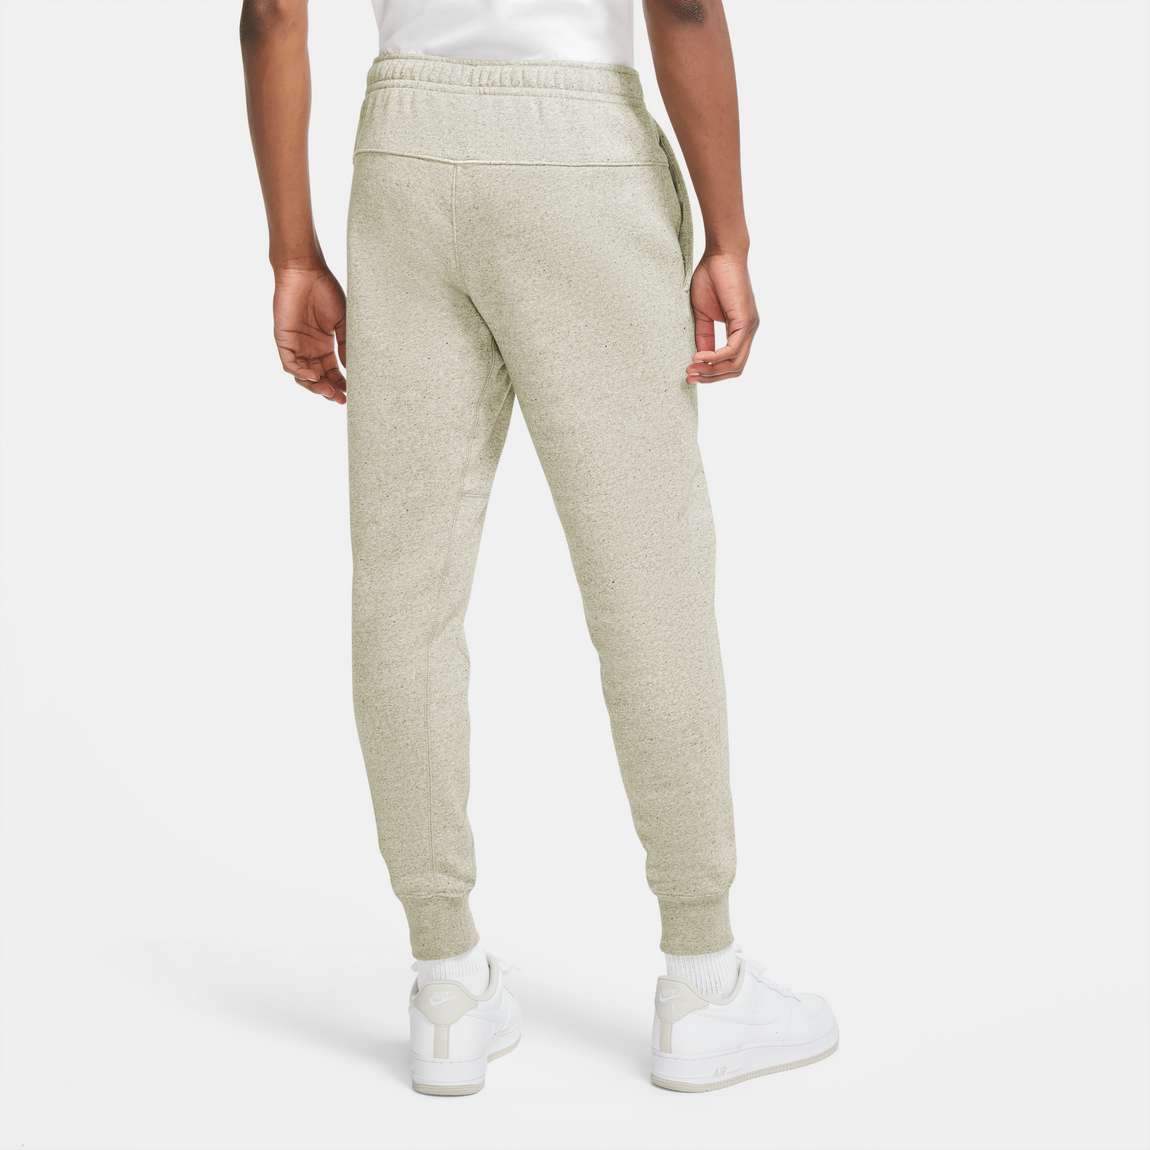 Nike Sportswear Fleece Pants (Sand/Multicolor) - Nike Sportswear Fleece Pants (Sand/Multicolor) -